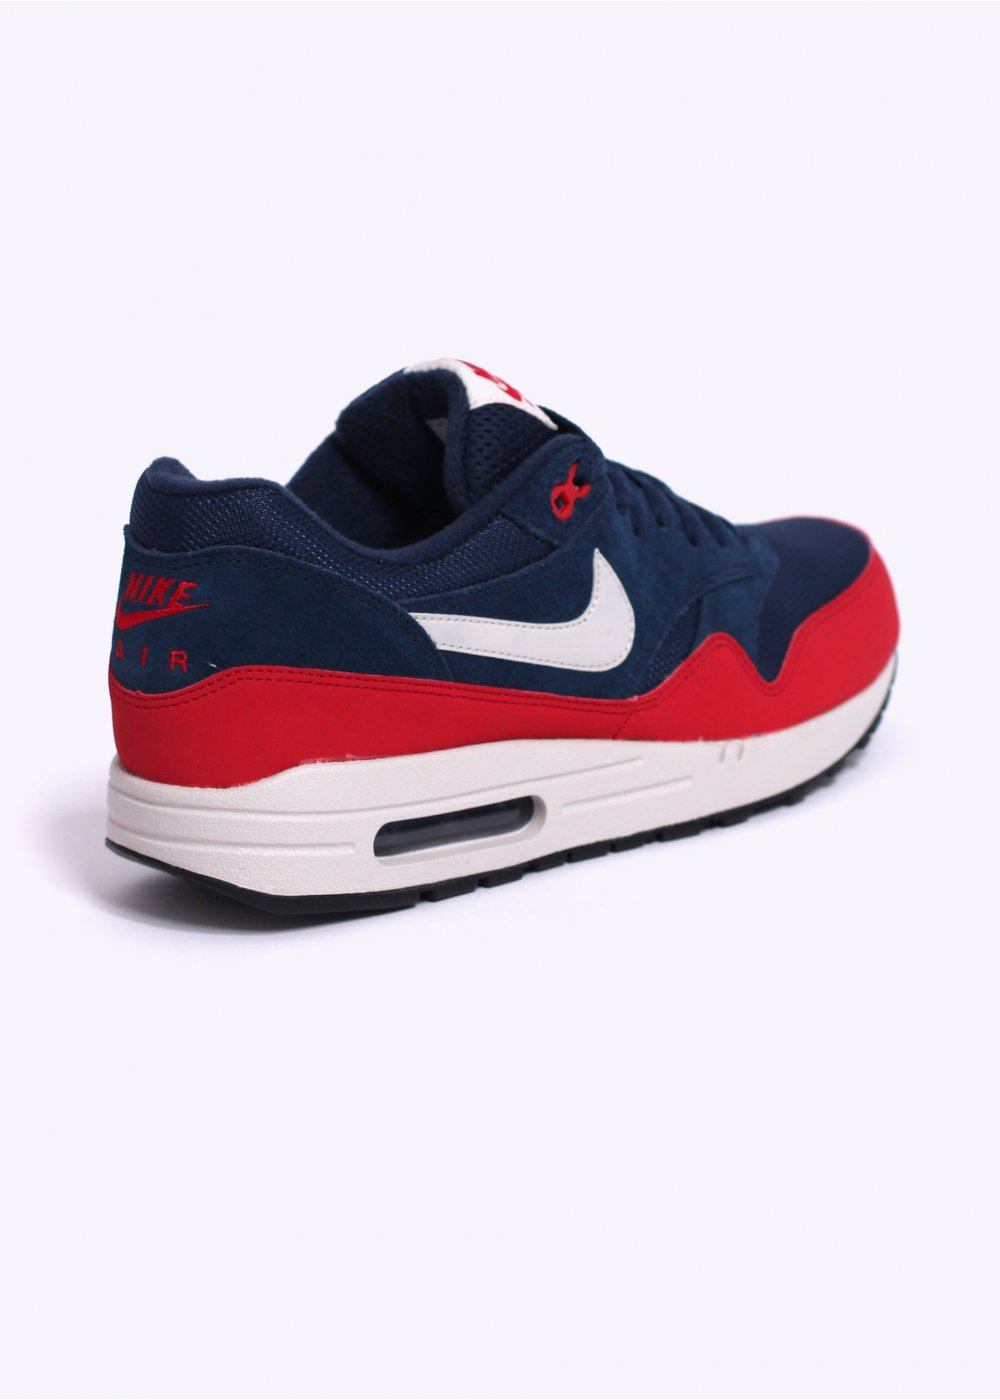 Nike Air Max 1 Essential Midnight Navy amp University Blue On Feet Sneaker Review